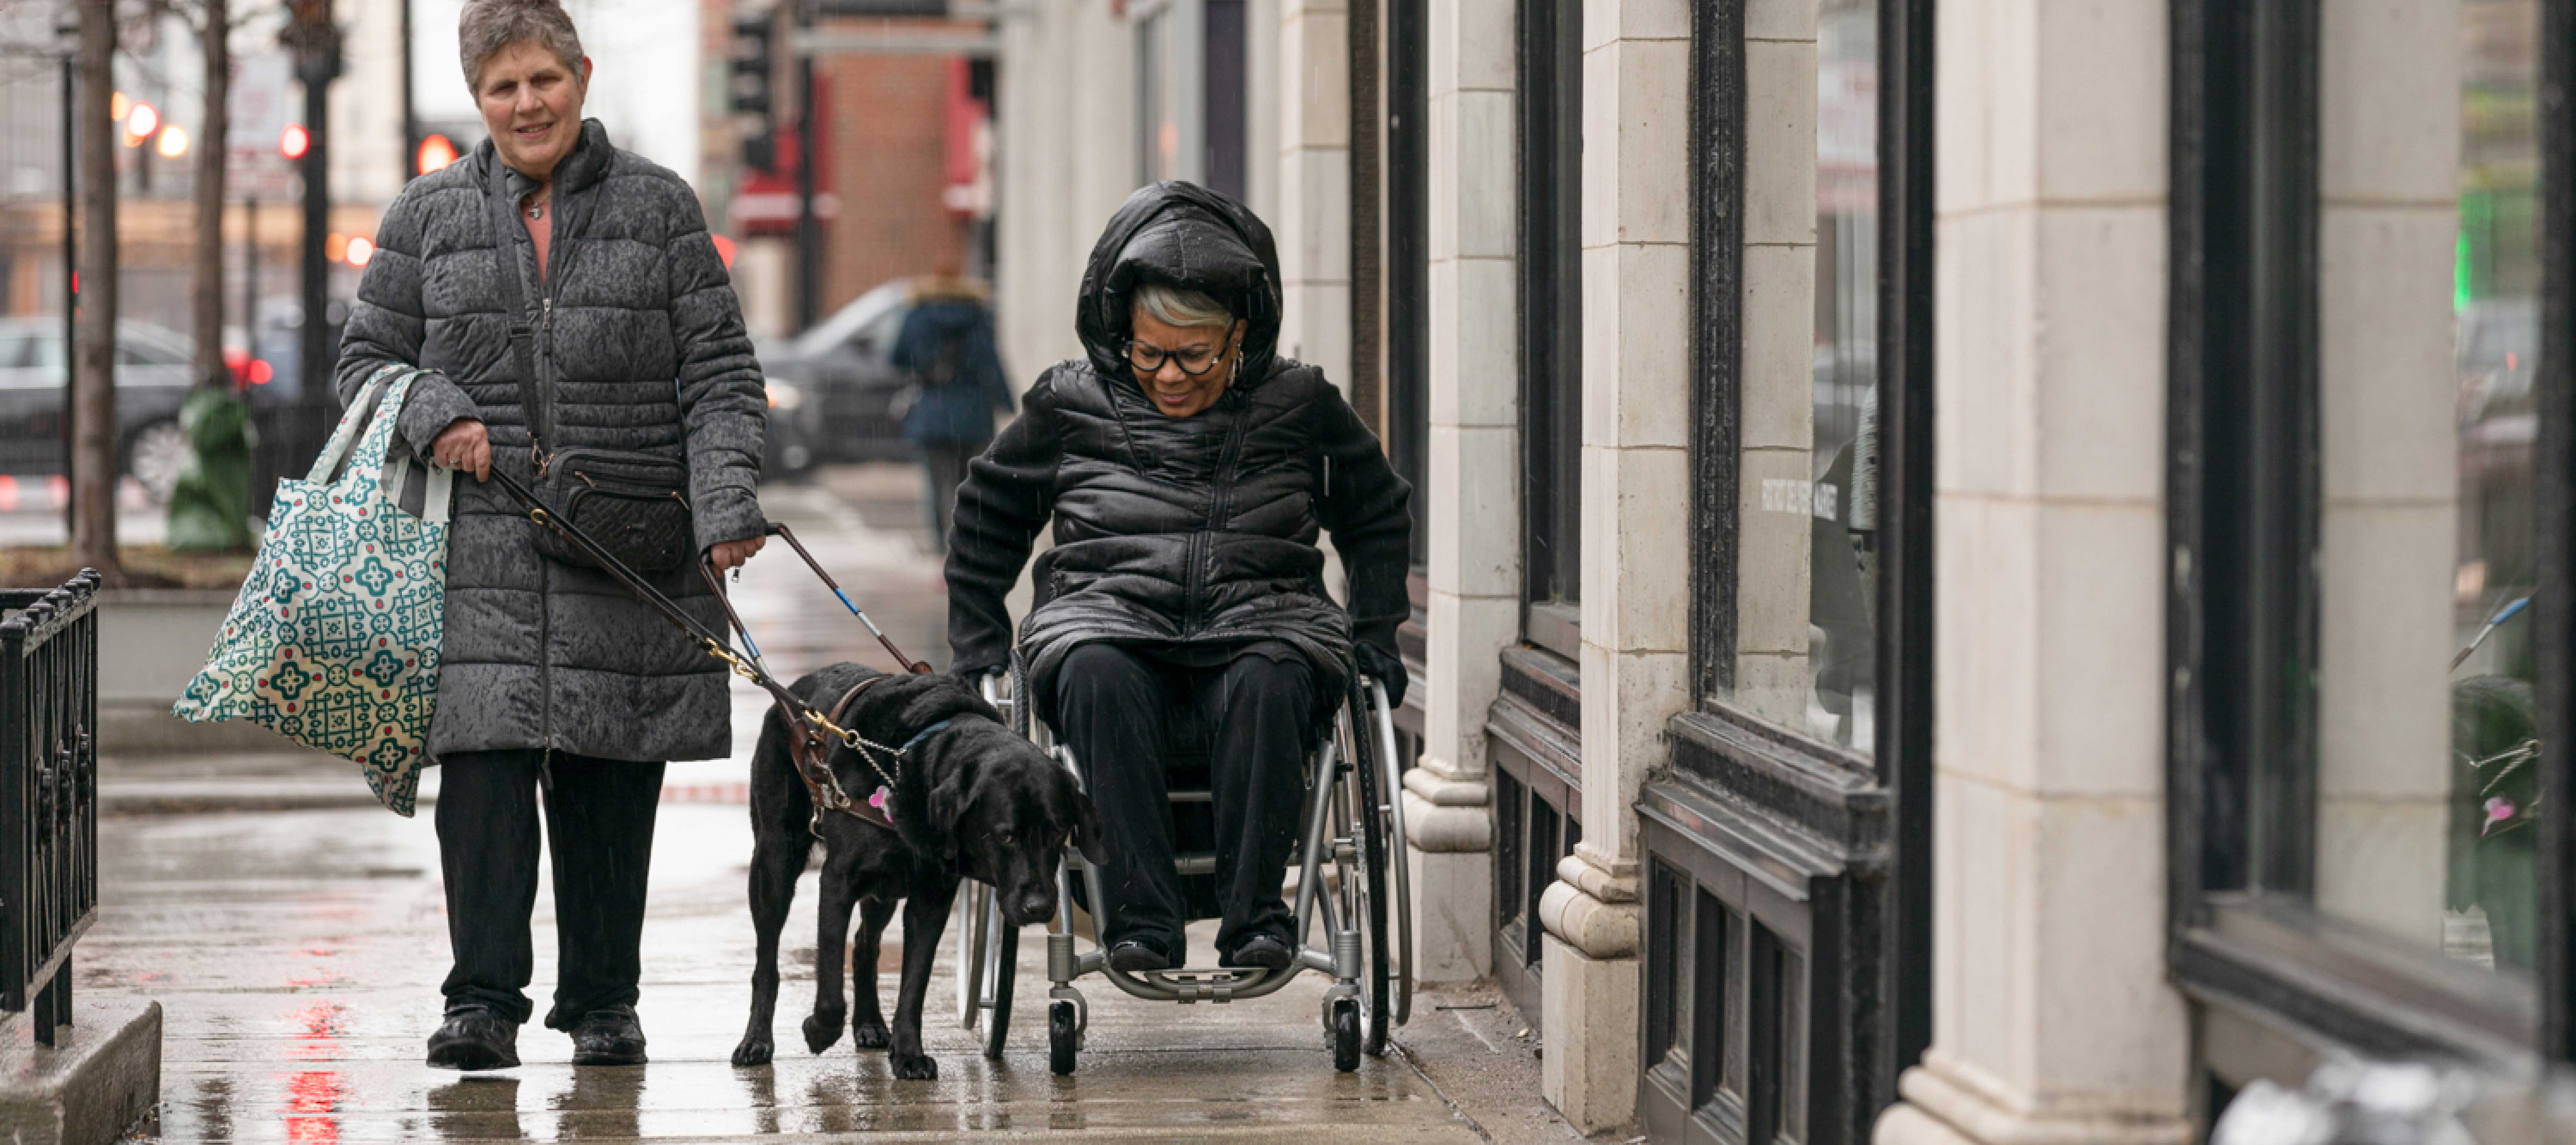 Woman with service dog and wheelchair user walking city street